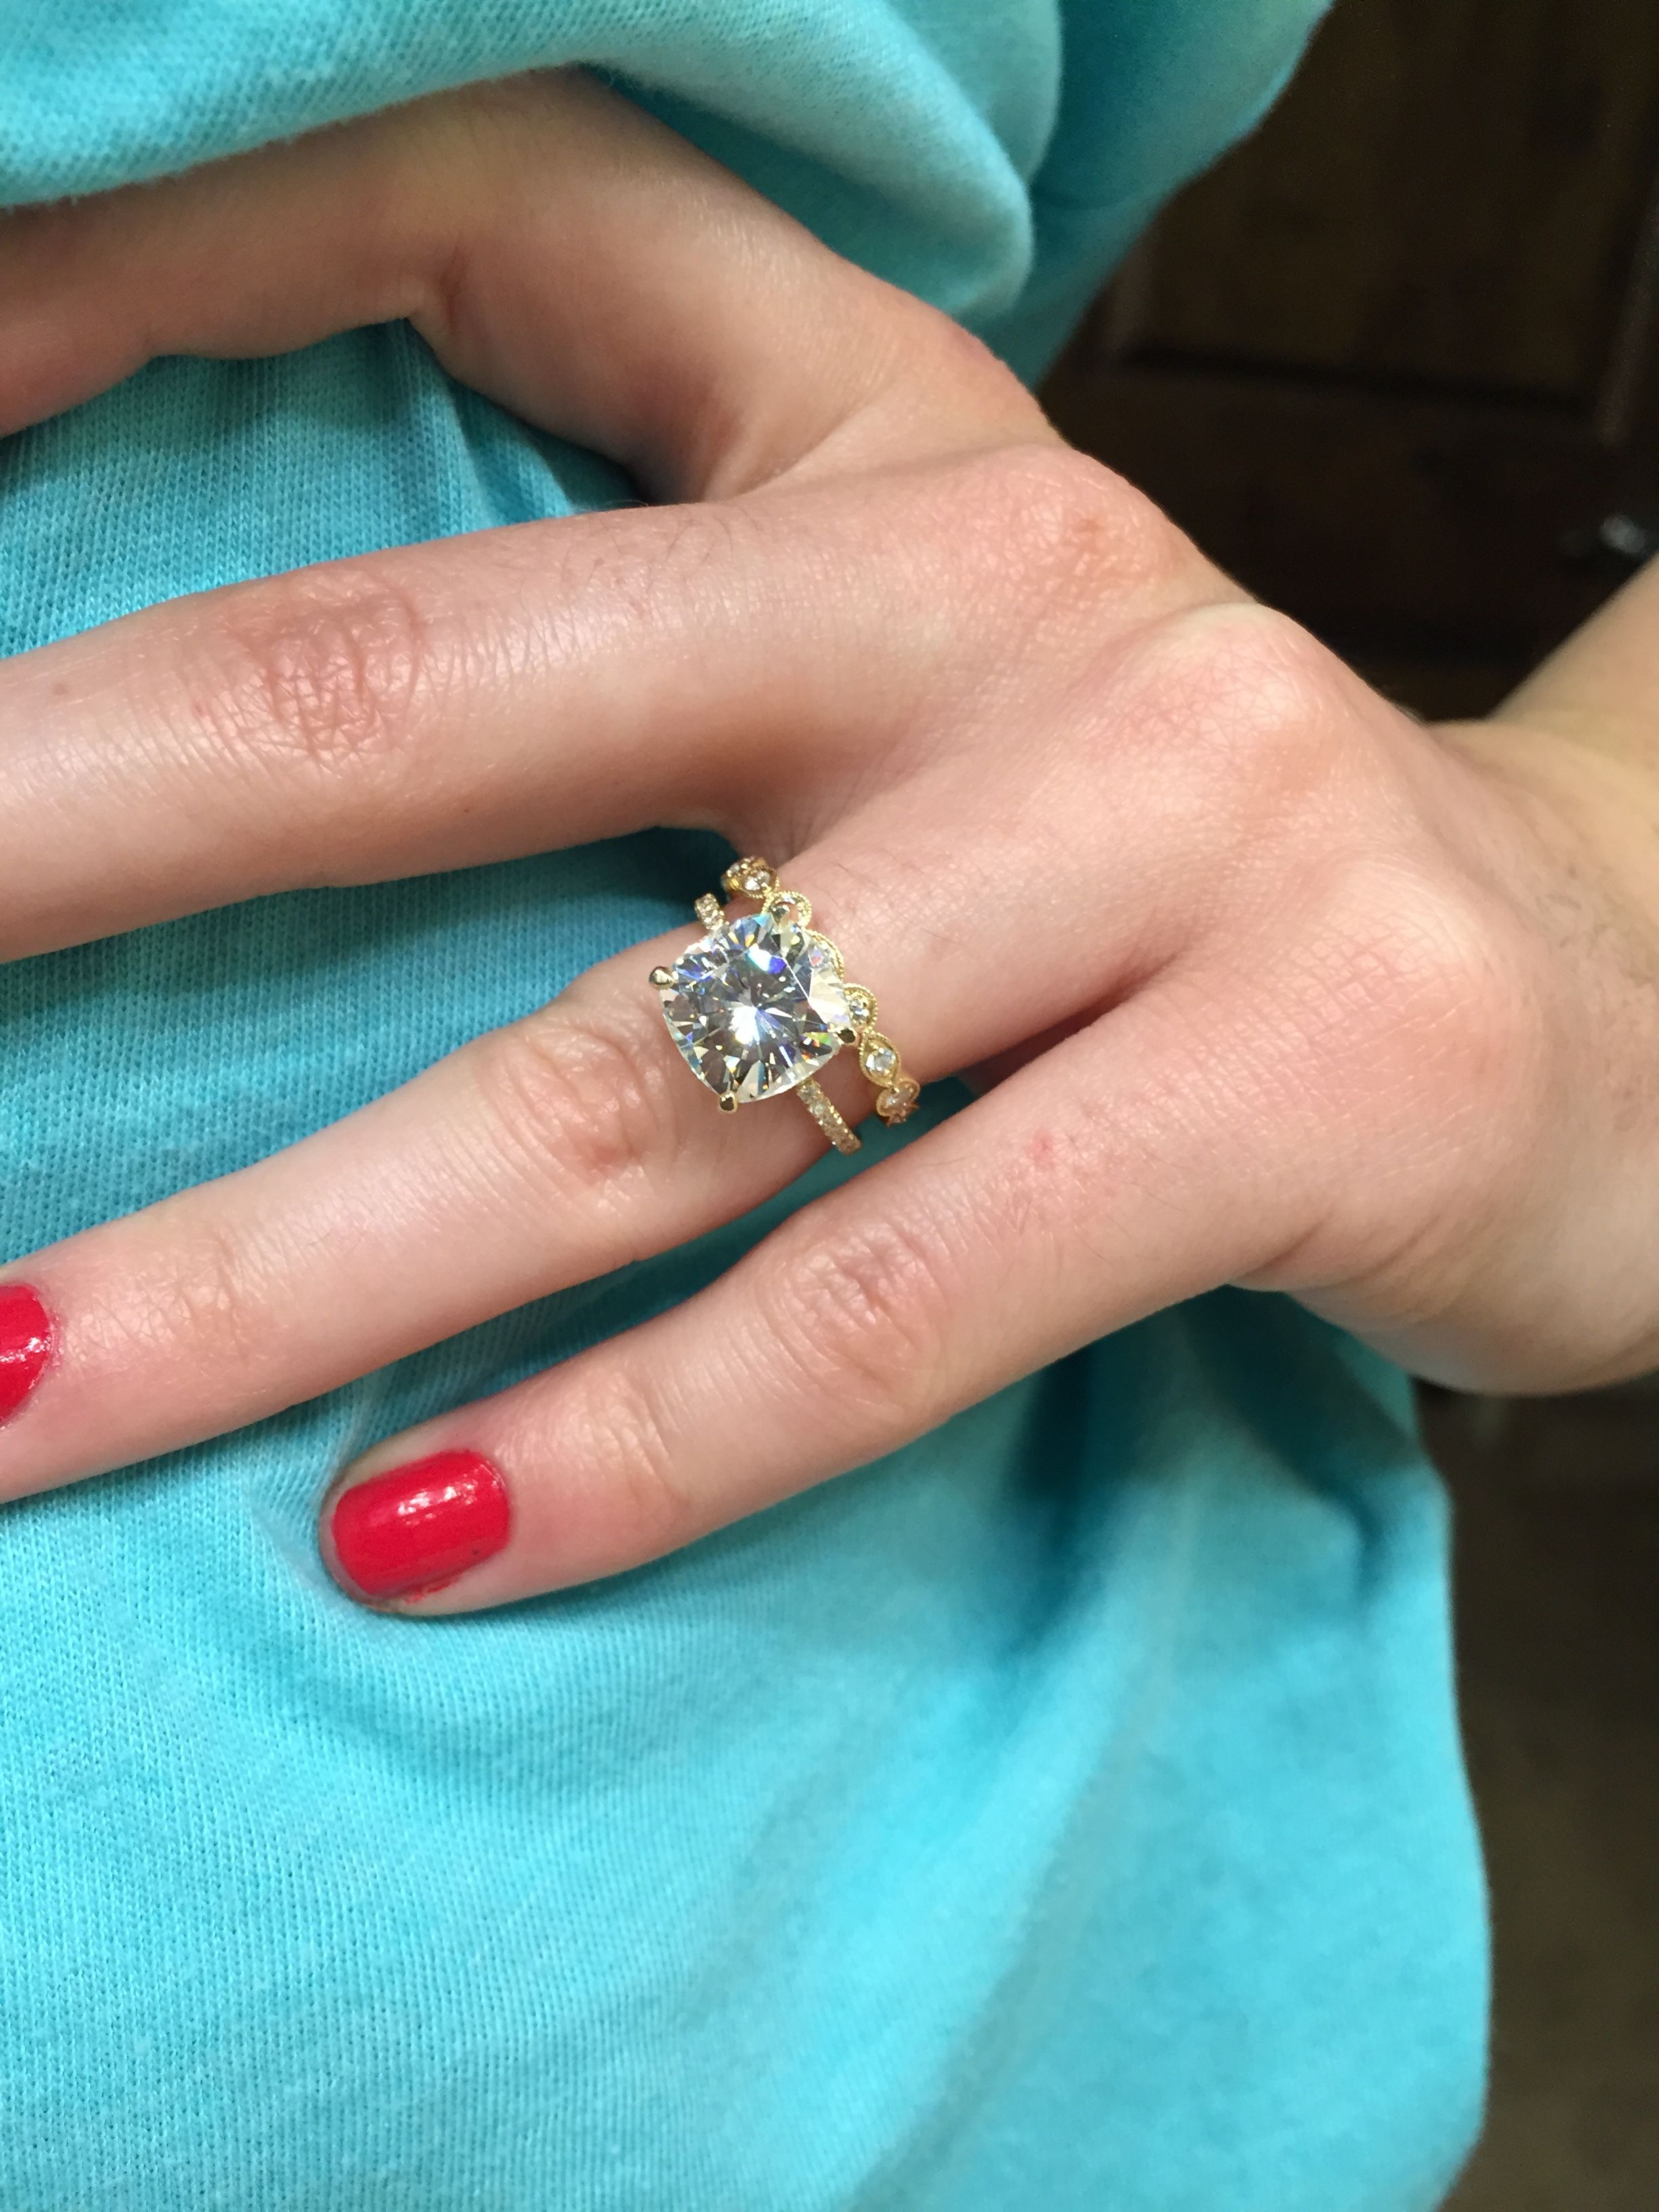 Moissanite Weddingbee Rings Pinterest